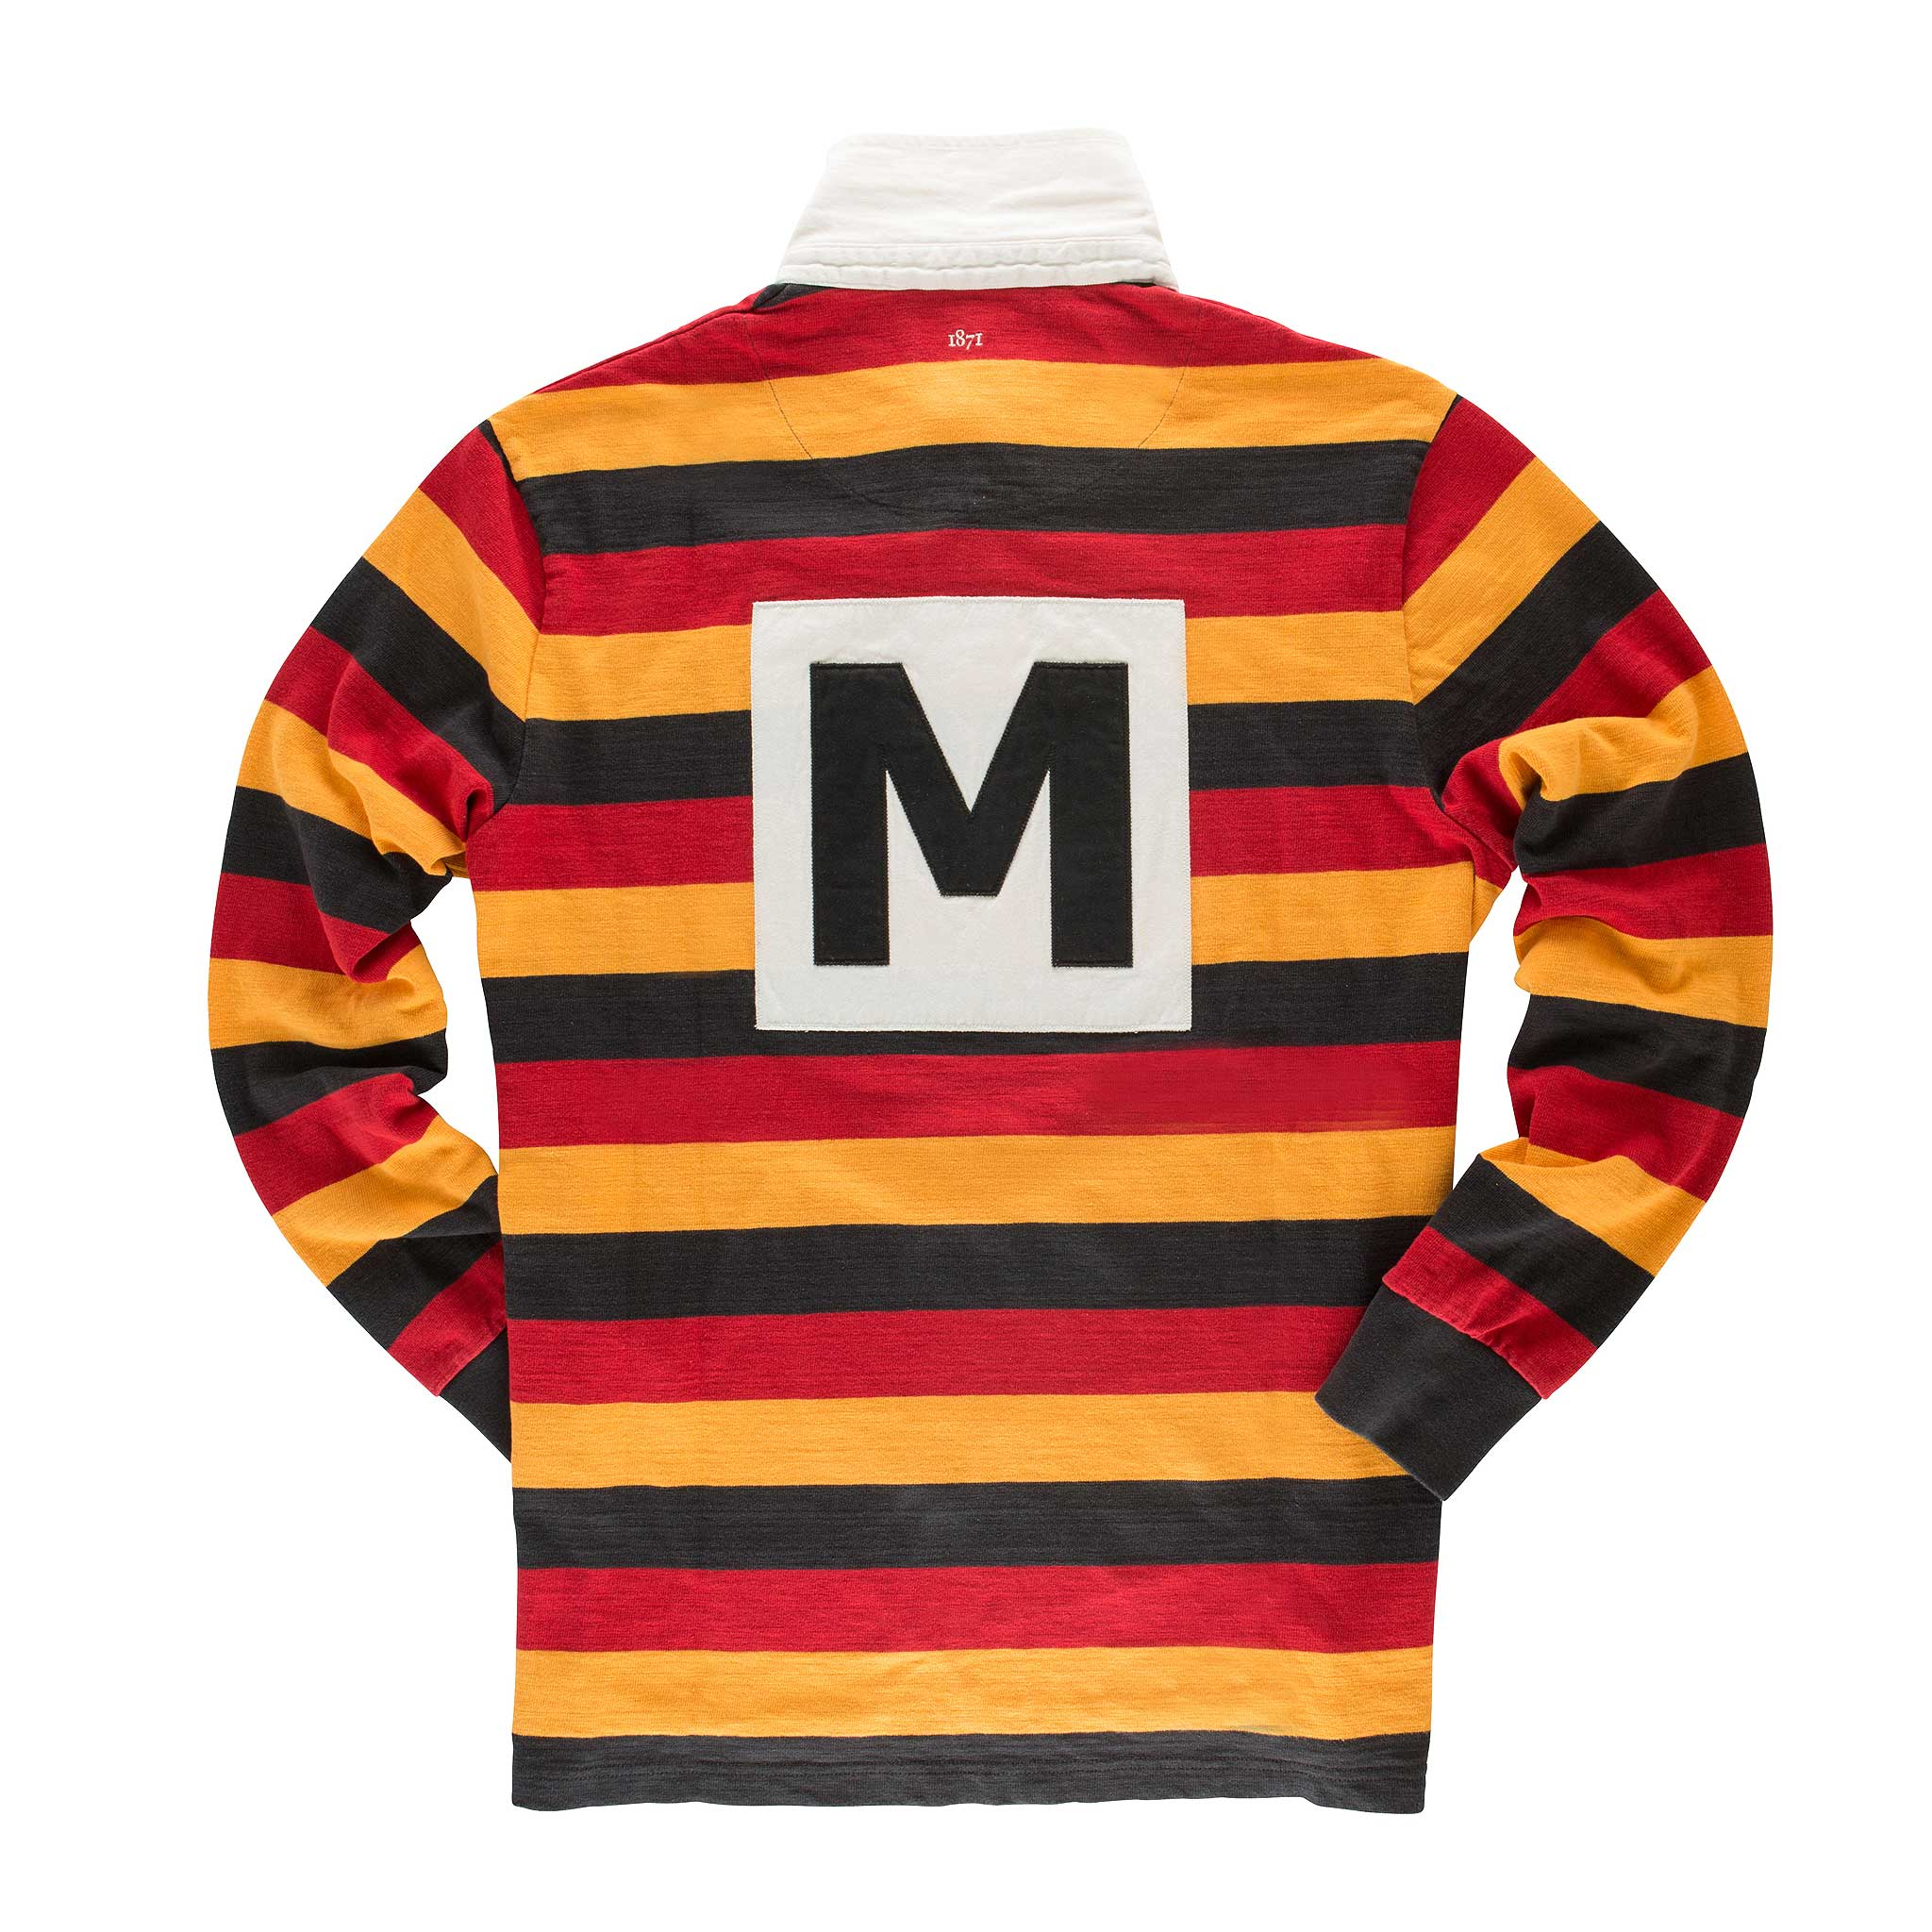 Mohicans 1871 Rugby Shirt - back